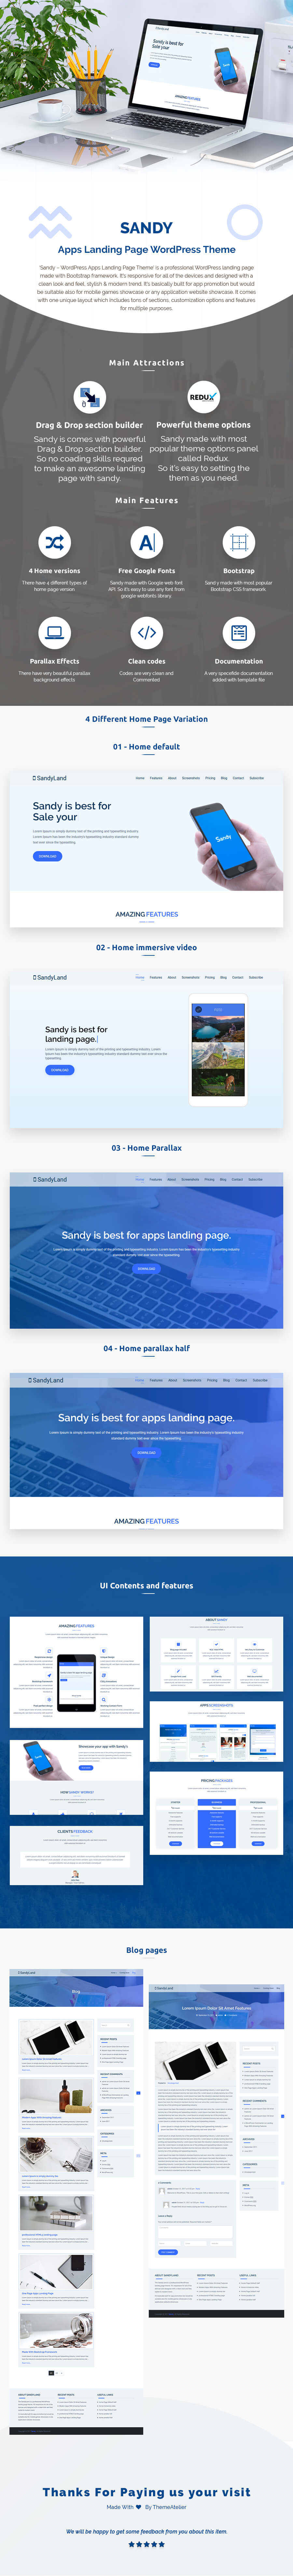 Sandy - Apps Landing Page WordPress Theme - 1